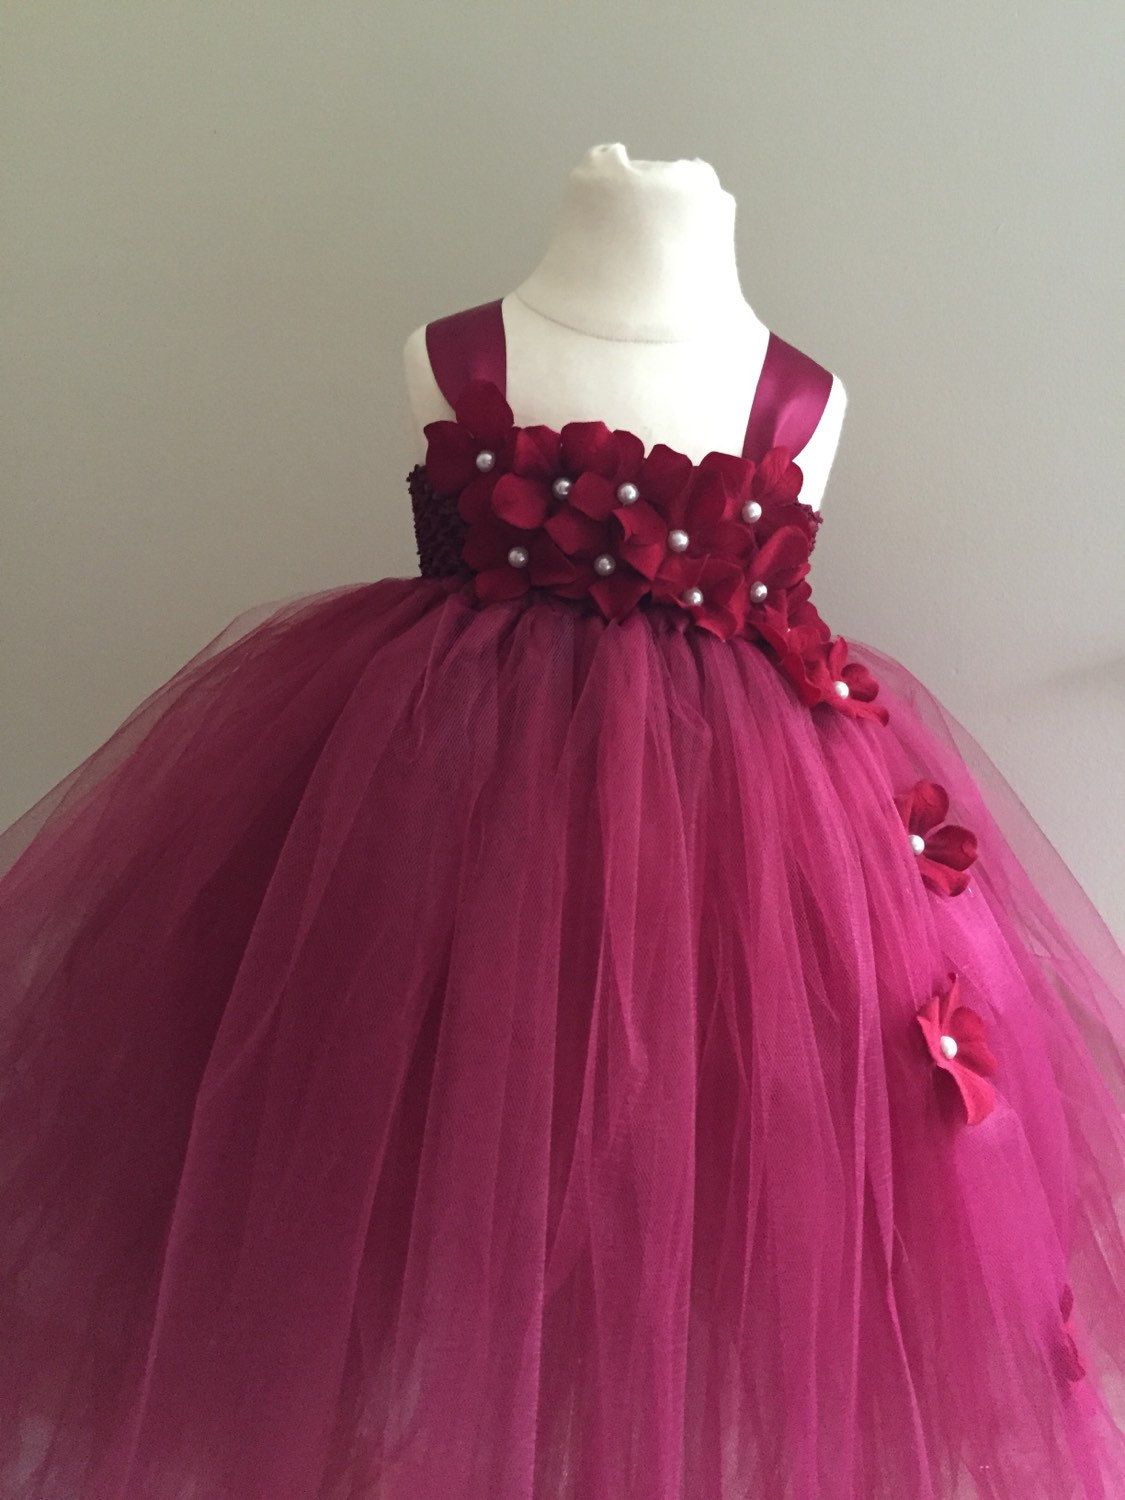 Burgundy dance tutu for girls ages years. Perfect for dance Perfect for dance Alvivi Baby Girls' Embroidered Princess Birthday Party Wedding Bridesmaid Tutu Dress with Bow Tie Sash.